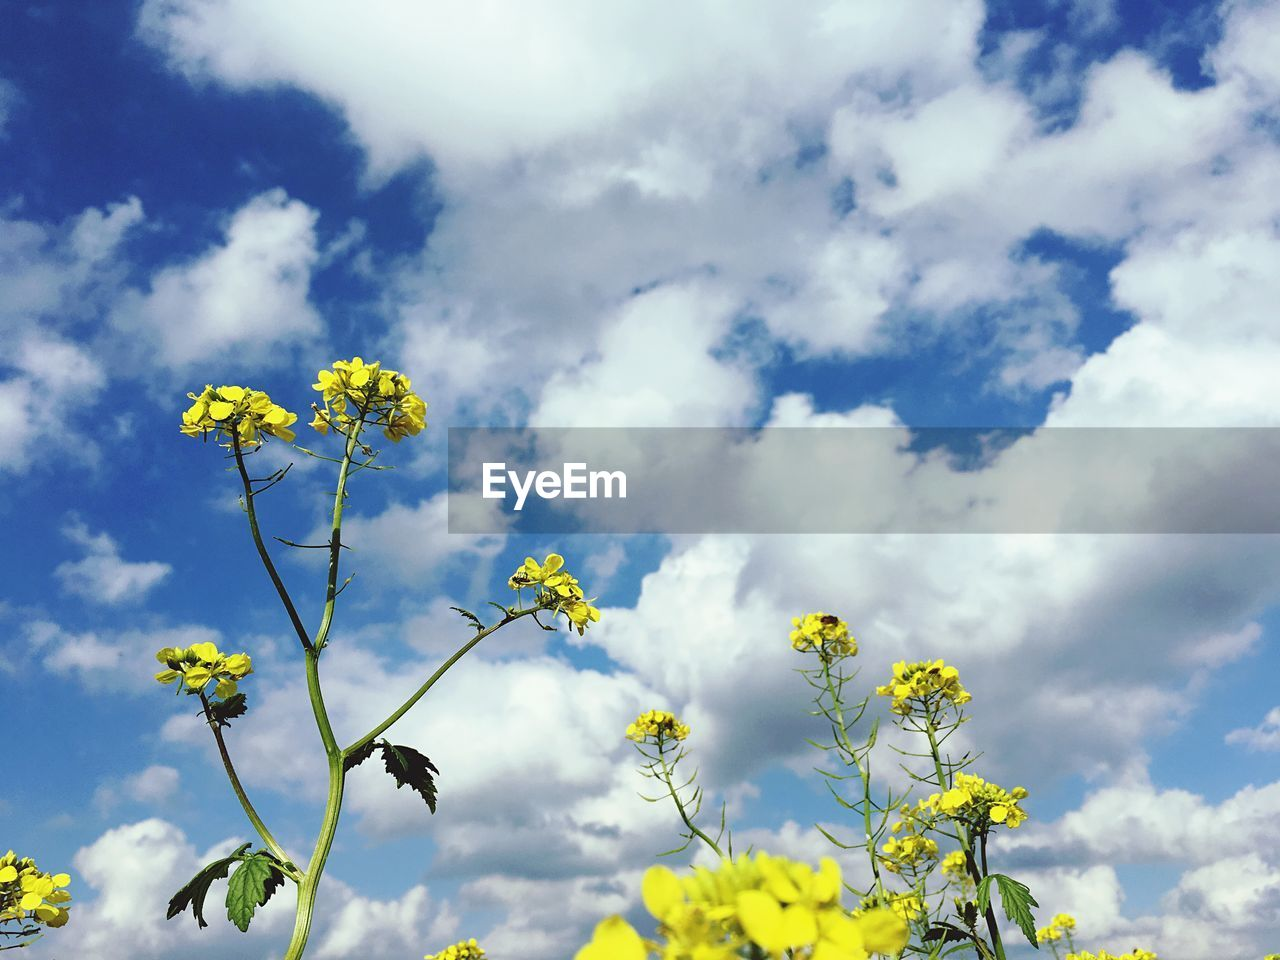 flower, flowering plant, sky, plant, yellow, beauty in nature, cloud - sky, freshness, fragility, growth, vulnerability, low angle view, nature, day, no people, blossom, outdoors, close-up, springtime, flower head